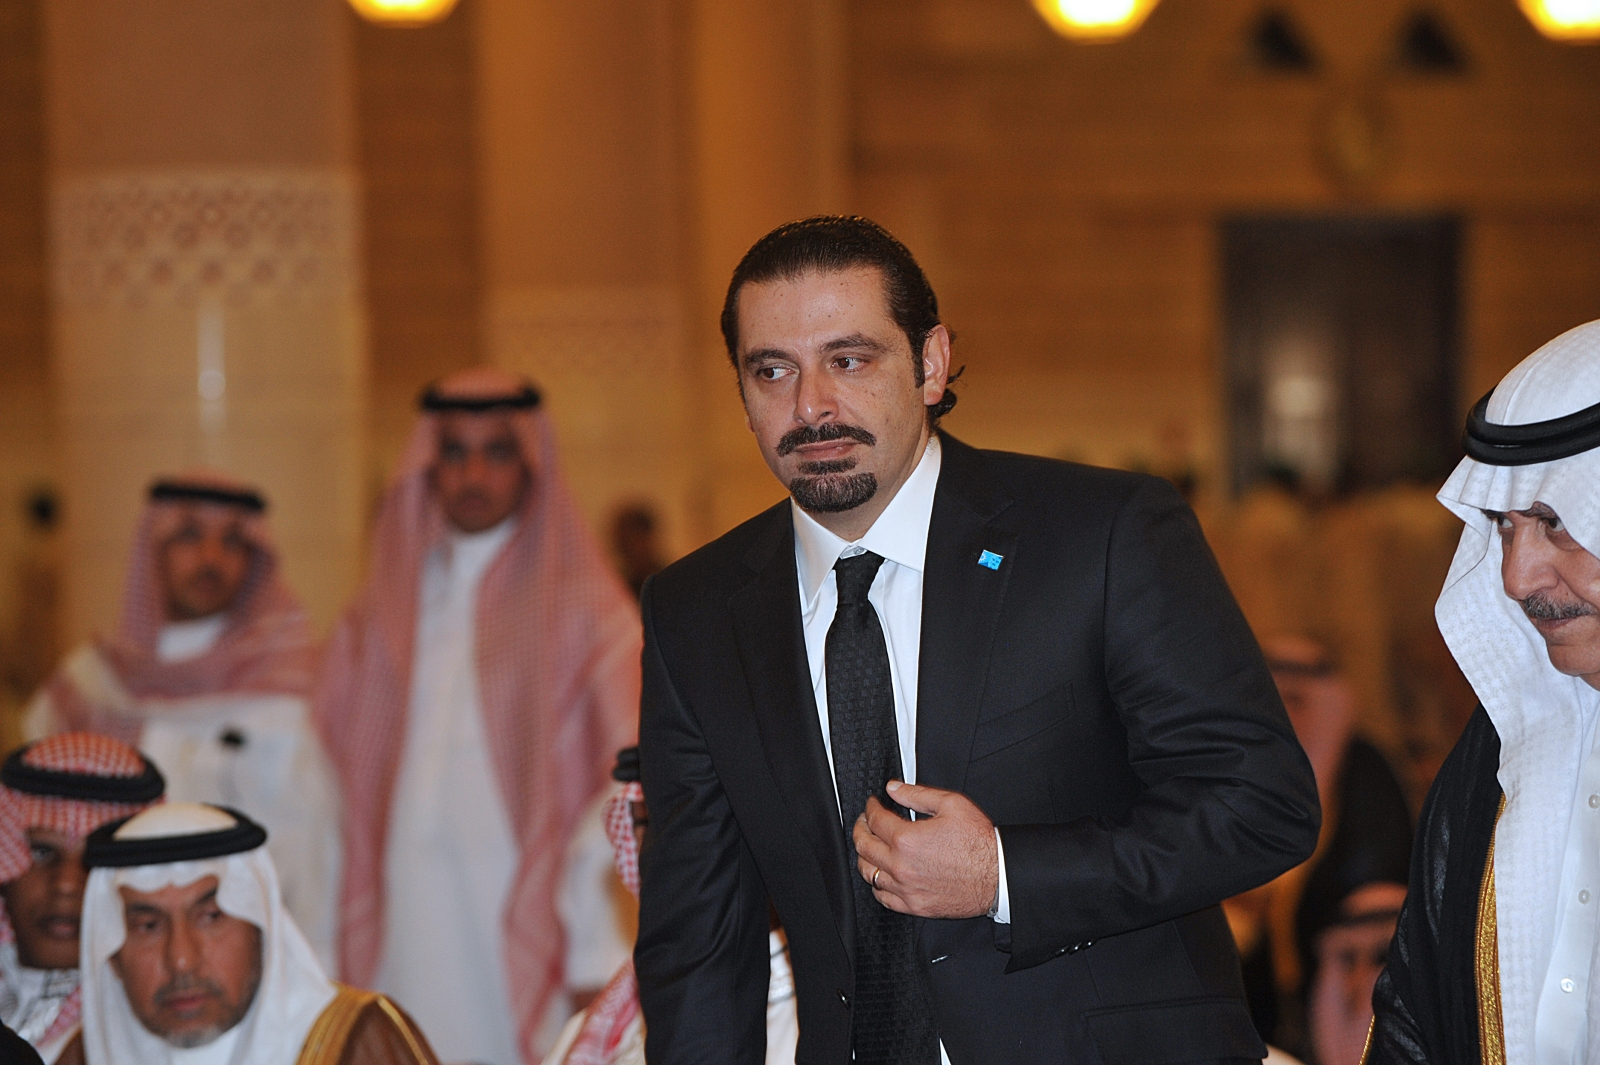 Saudi minister says he has 'confirmed information' on plot to kill Hariri